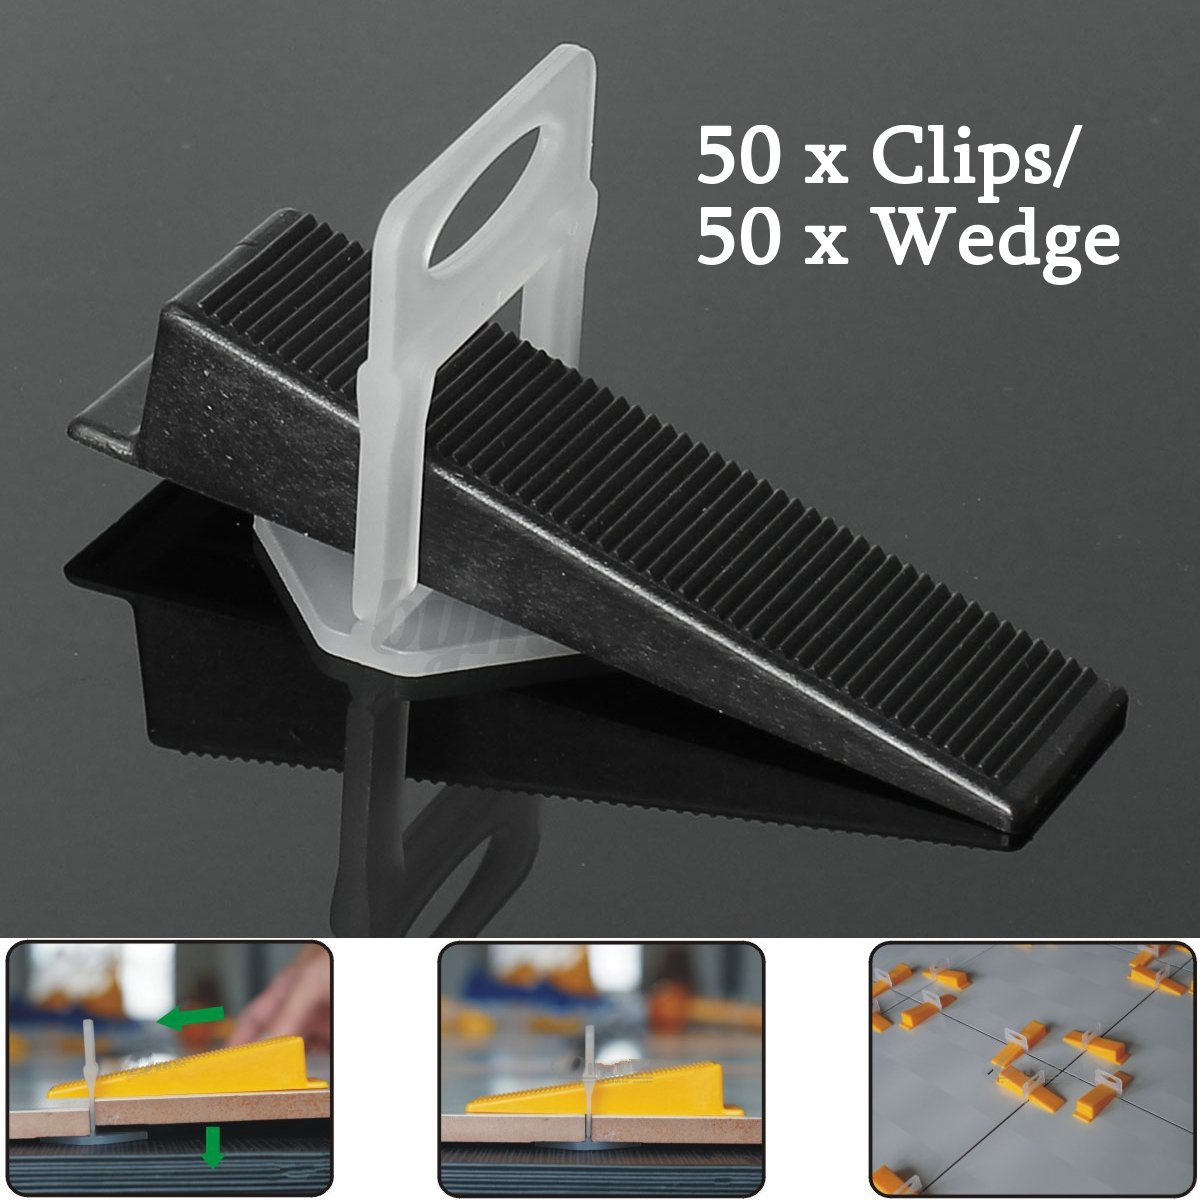 Tile leveling system kit 50 clips 50 wedges wall floor spacer image is loading tile leveling system kit 50 clips 50 wedges dailygadgetfo Image collections